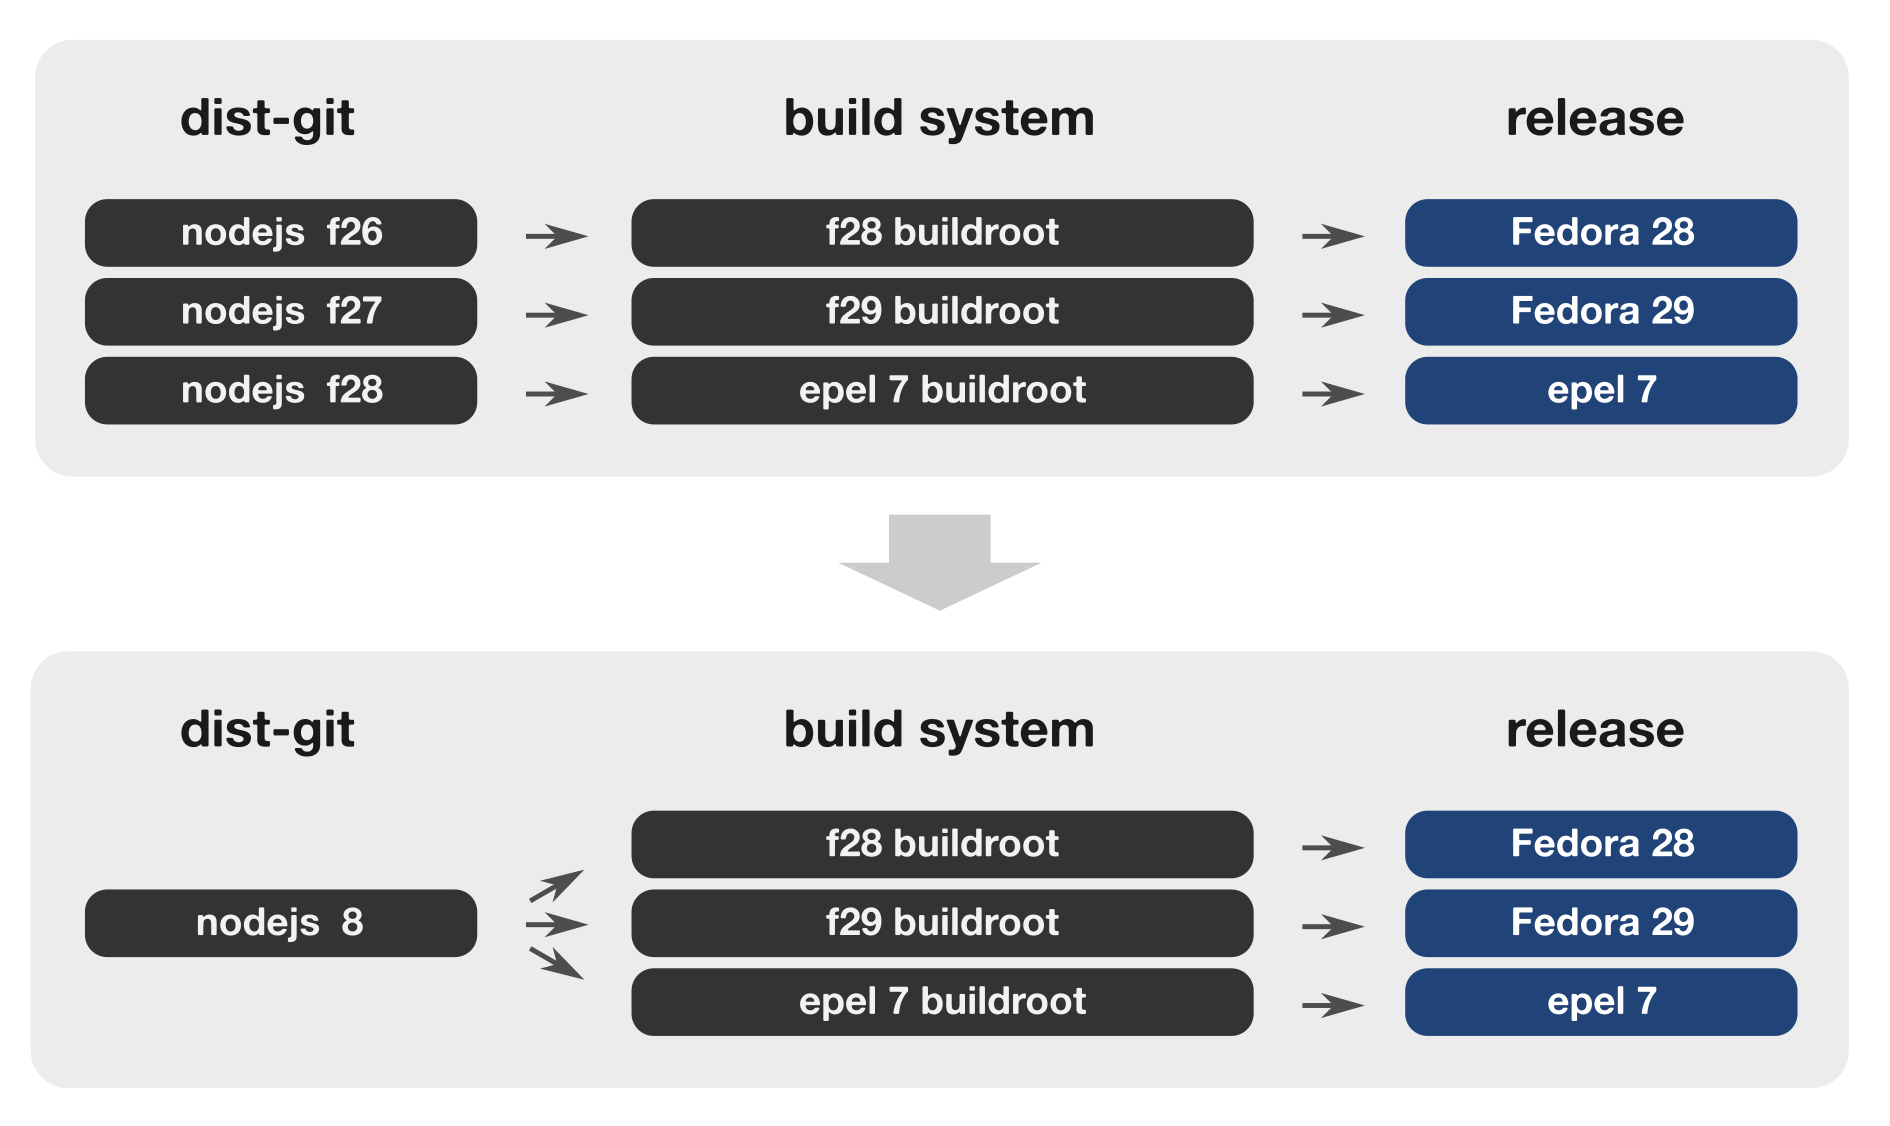 modularity-hybrid-one-branch-builds-them-all